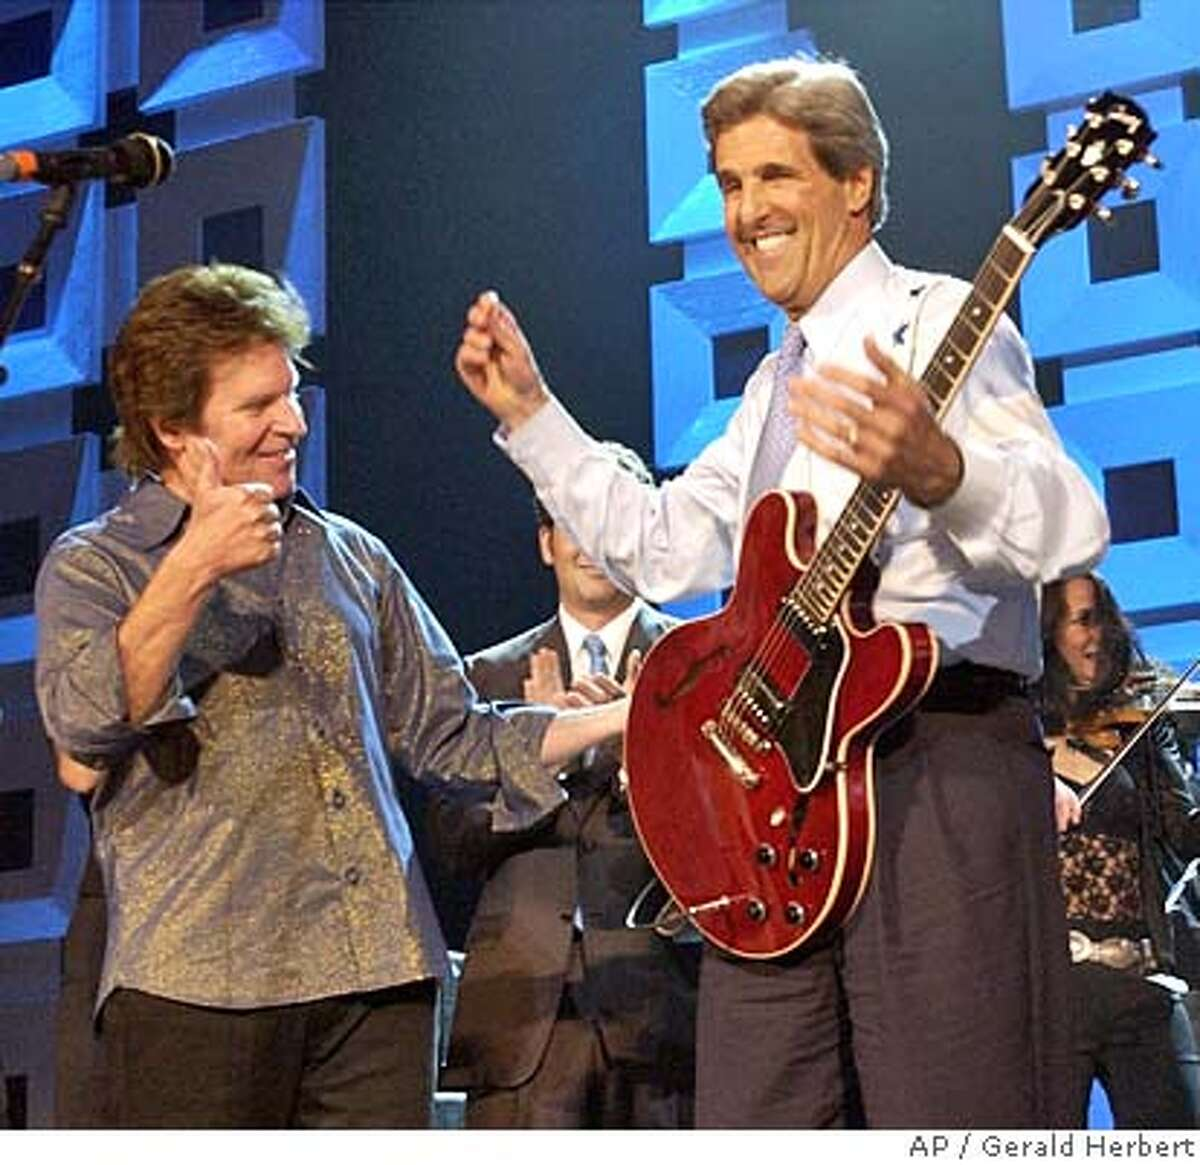 Rocker John Fogerty reacts after Democratic presidential candidate Sen. John Kerry, D-MA, played the guitar during a concert benefiting his campaign at Radio City Music Hall in New York Thursday, July 8, 2004. (AP Photo/Gerald Herbert)